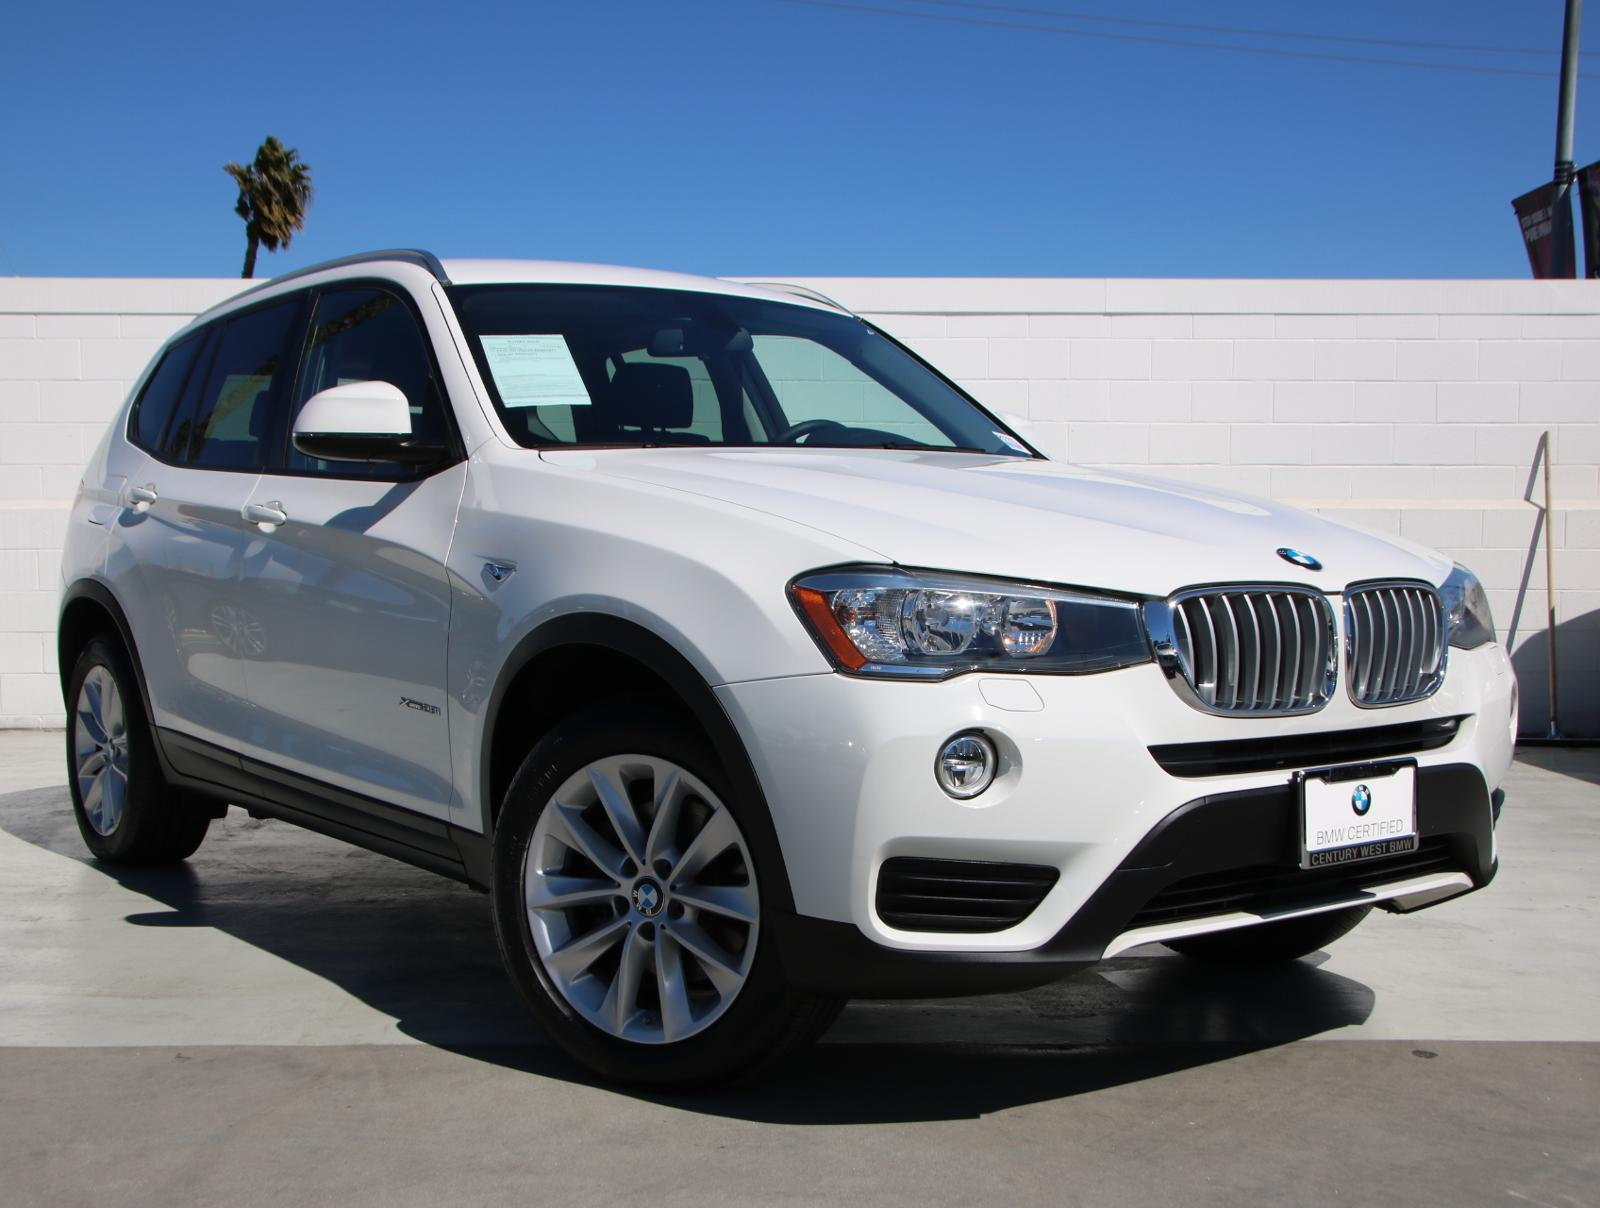 Bmw Pre Owned >> Certified Pre Owned 2016 Bmw X3 Xdrive28i Awd 4dr Xdrive28i In North